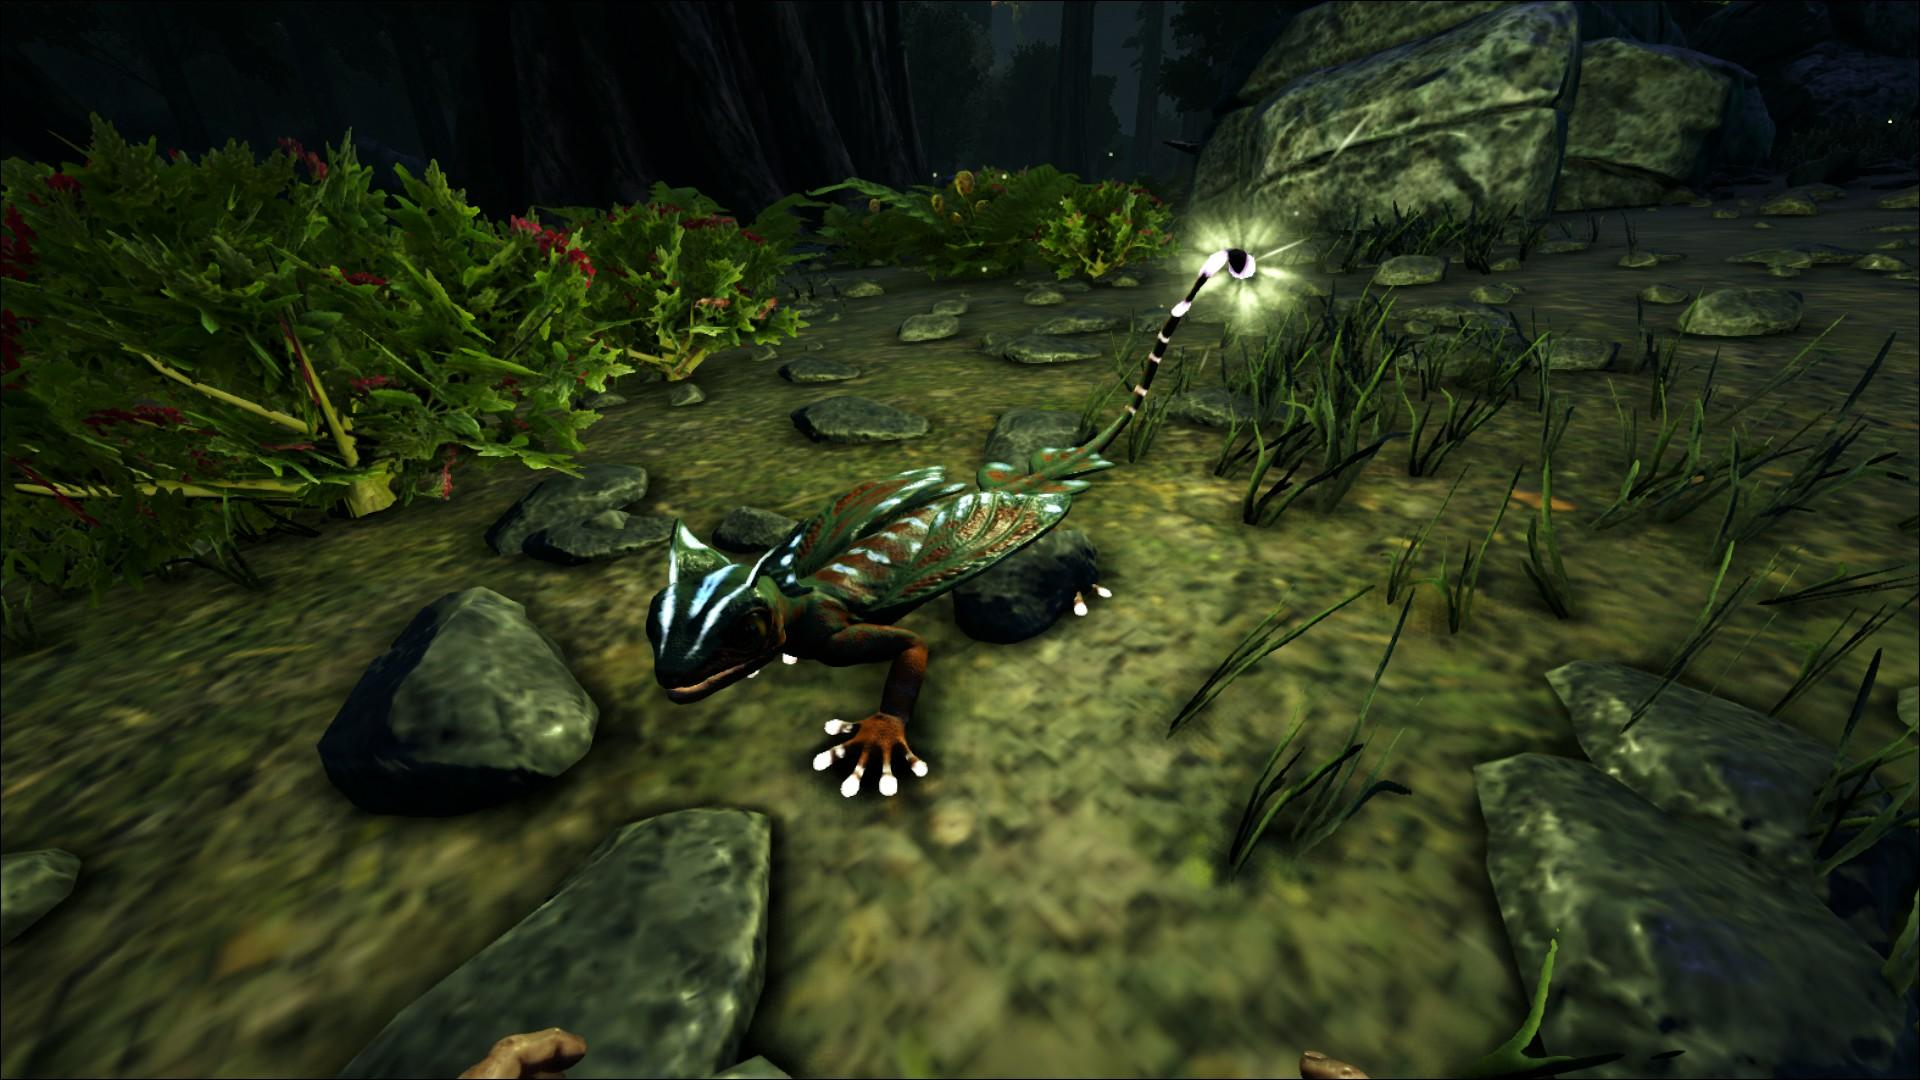 Ark: Survival Evolved, Developed By Studio Wildcard, Is An Action Adventure  Survival Video Game. Players Are Tossed Into An Island That Is Filled With  All ...